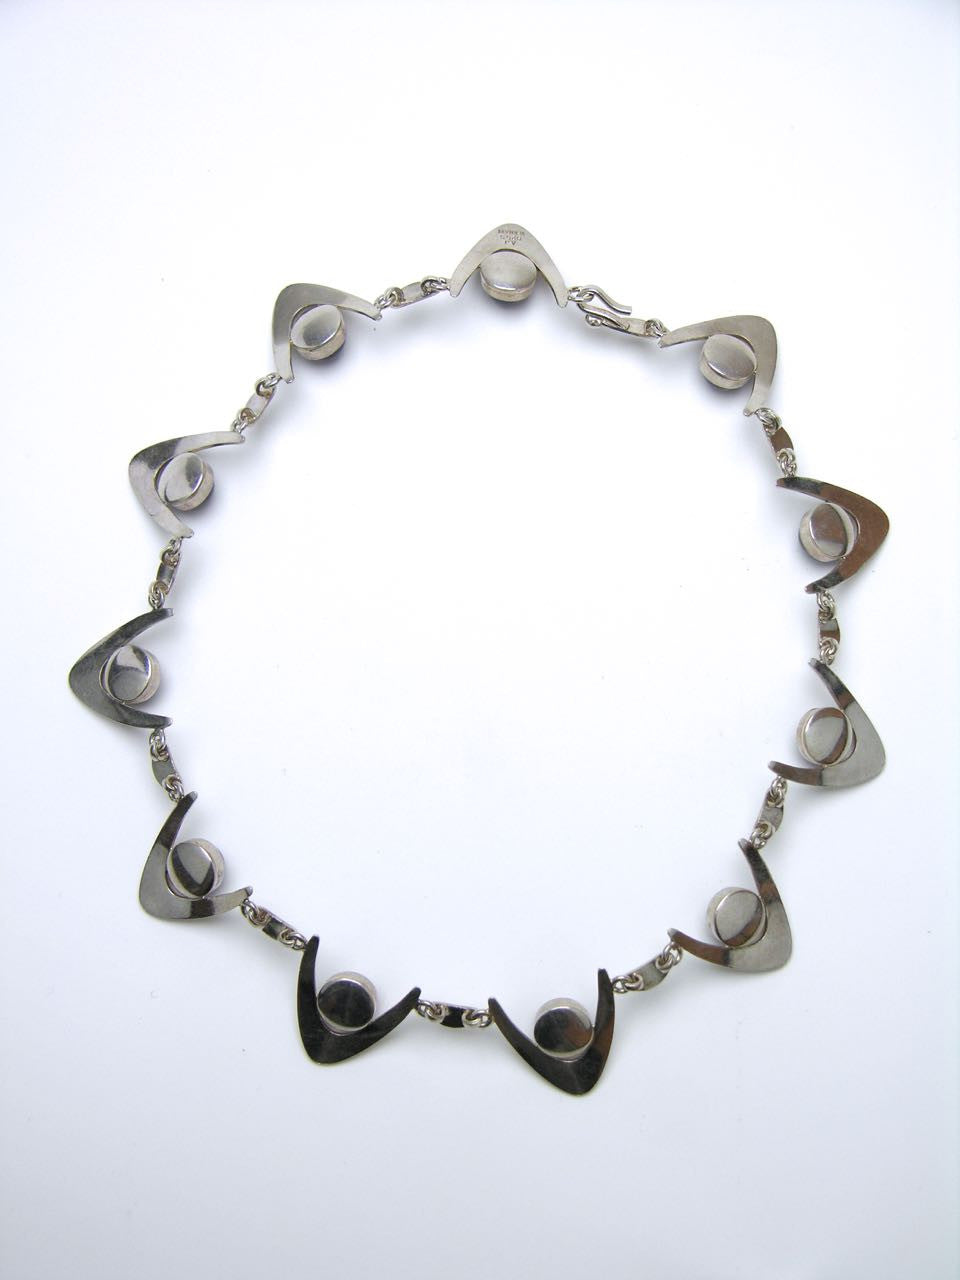 Arne Johansen silver and amethyst wishbone necklace